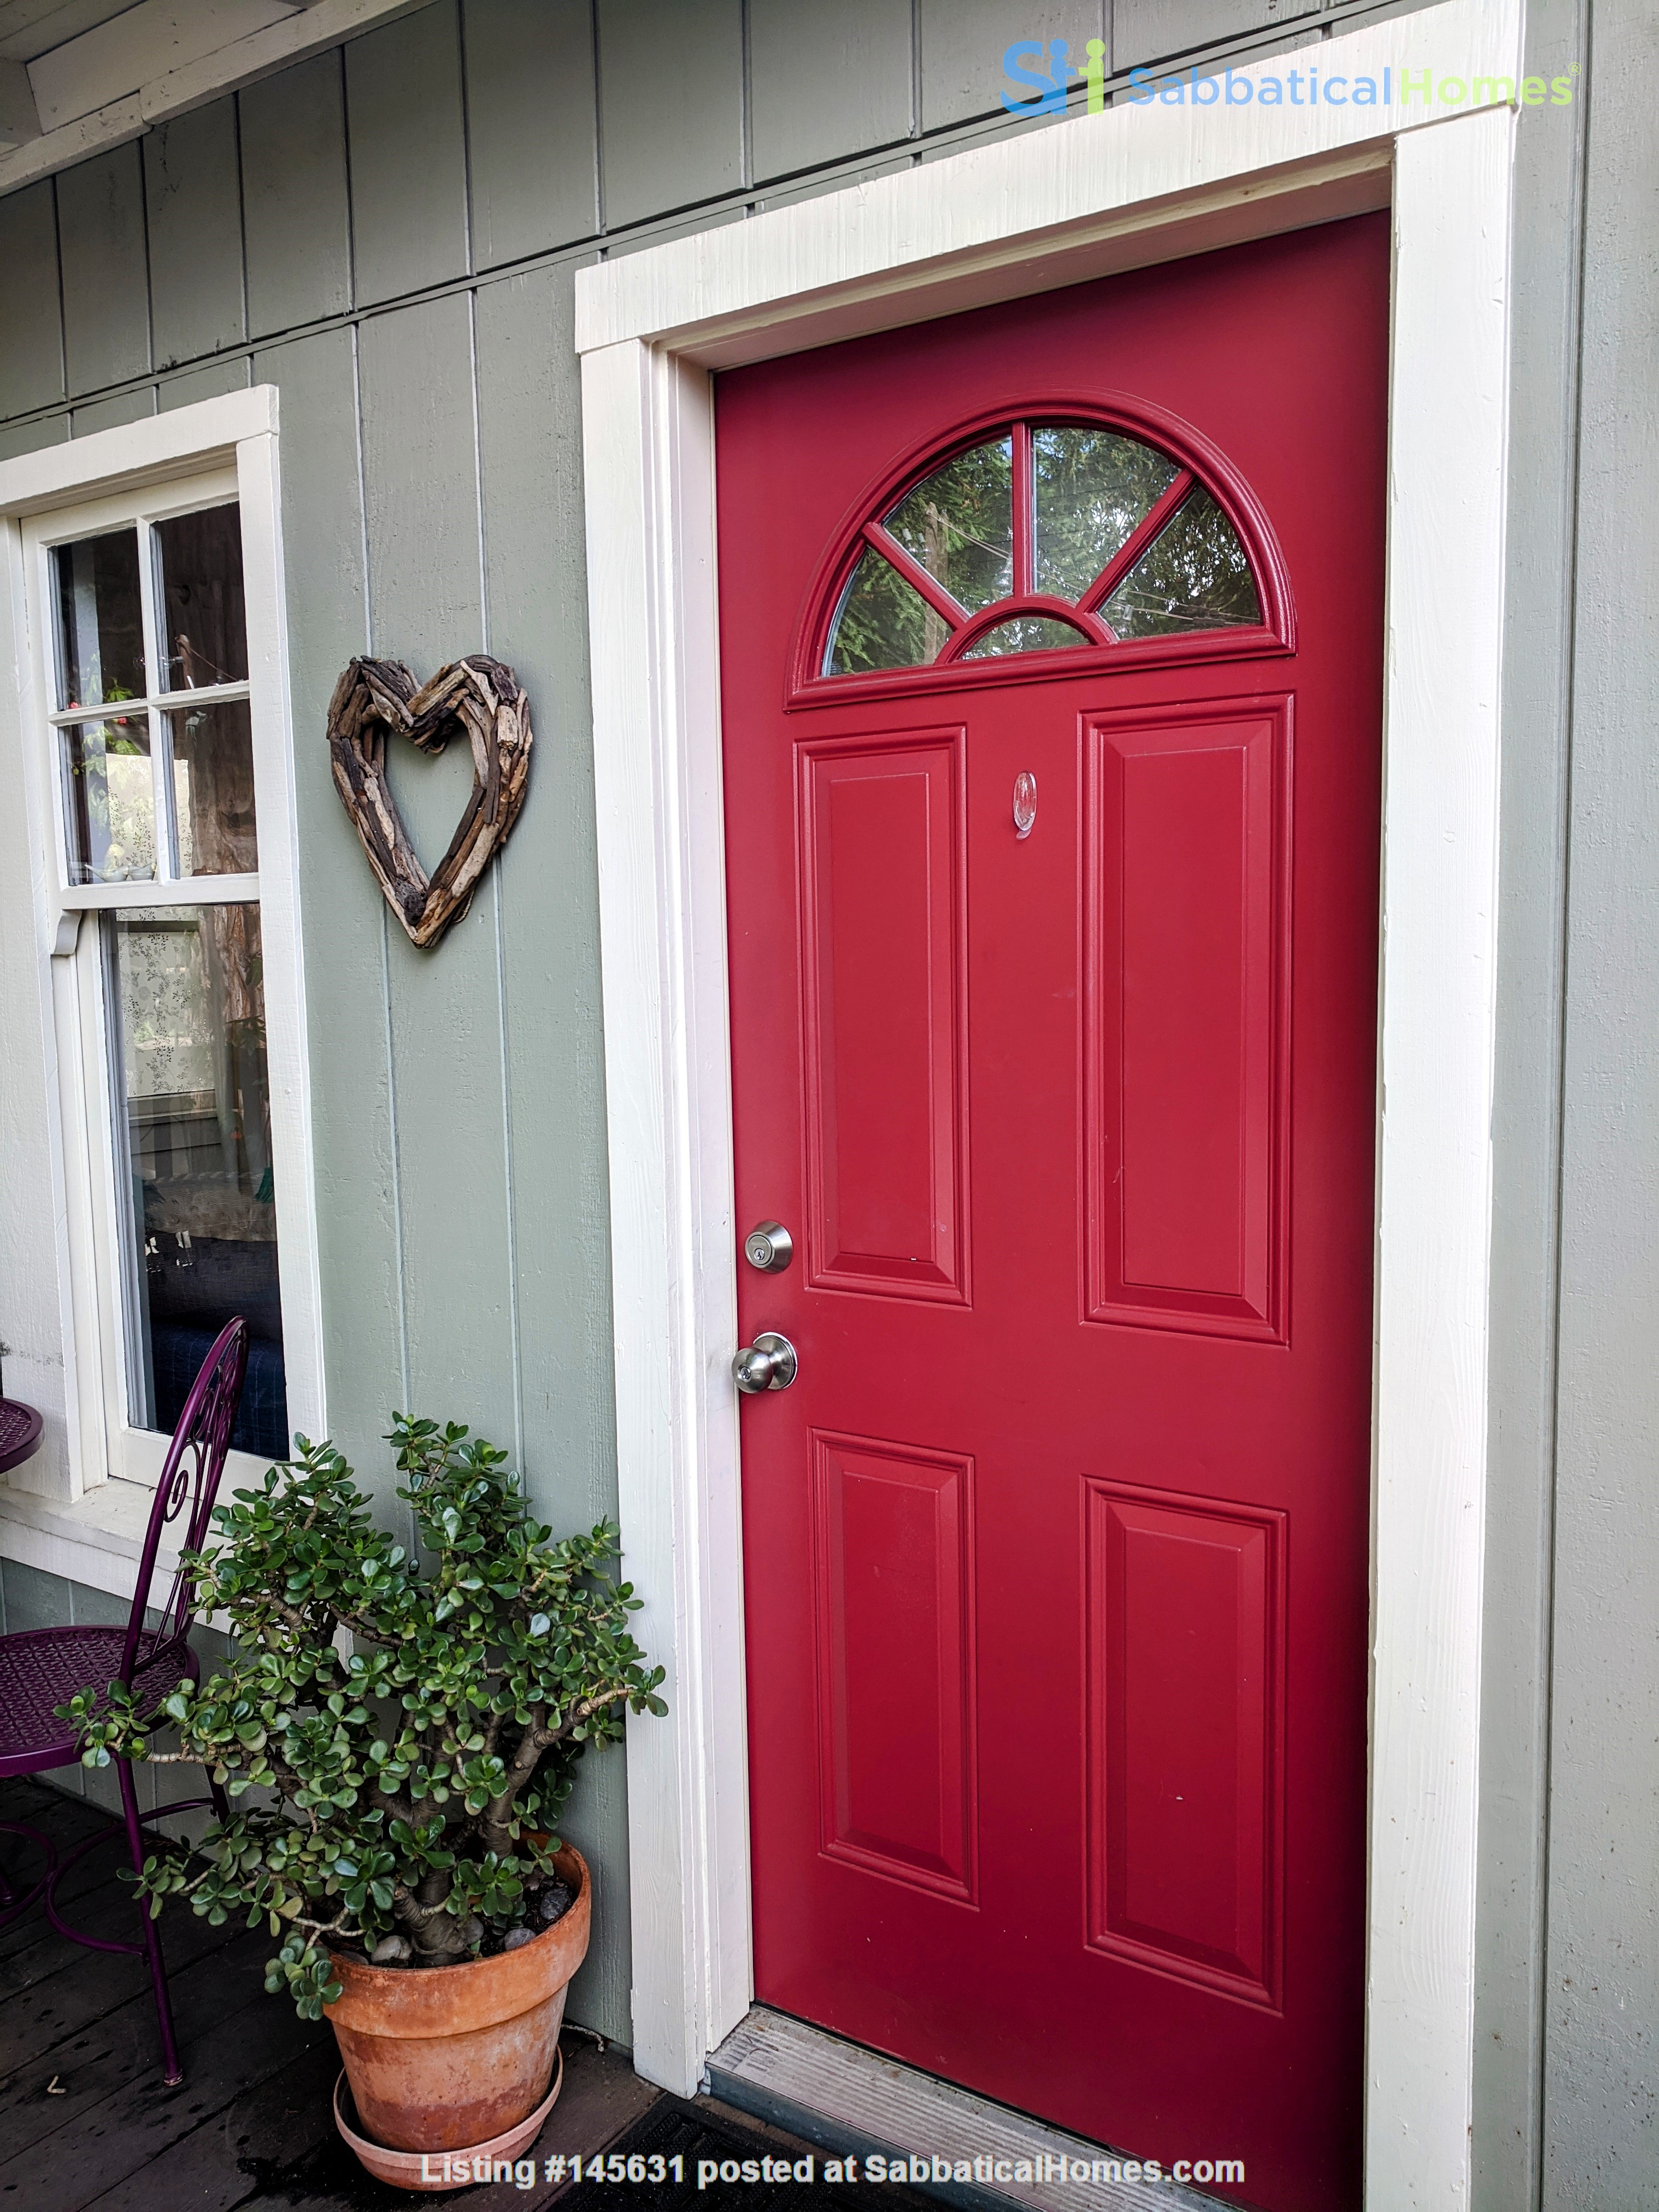 CHARMING PRIVATE COTTAGE 1 BR/1 BA + Office/studio space (720sft) Home Rental in San Rafael, California, United States 0